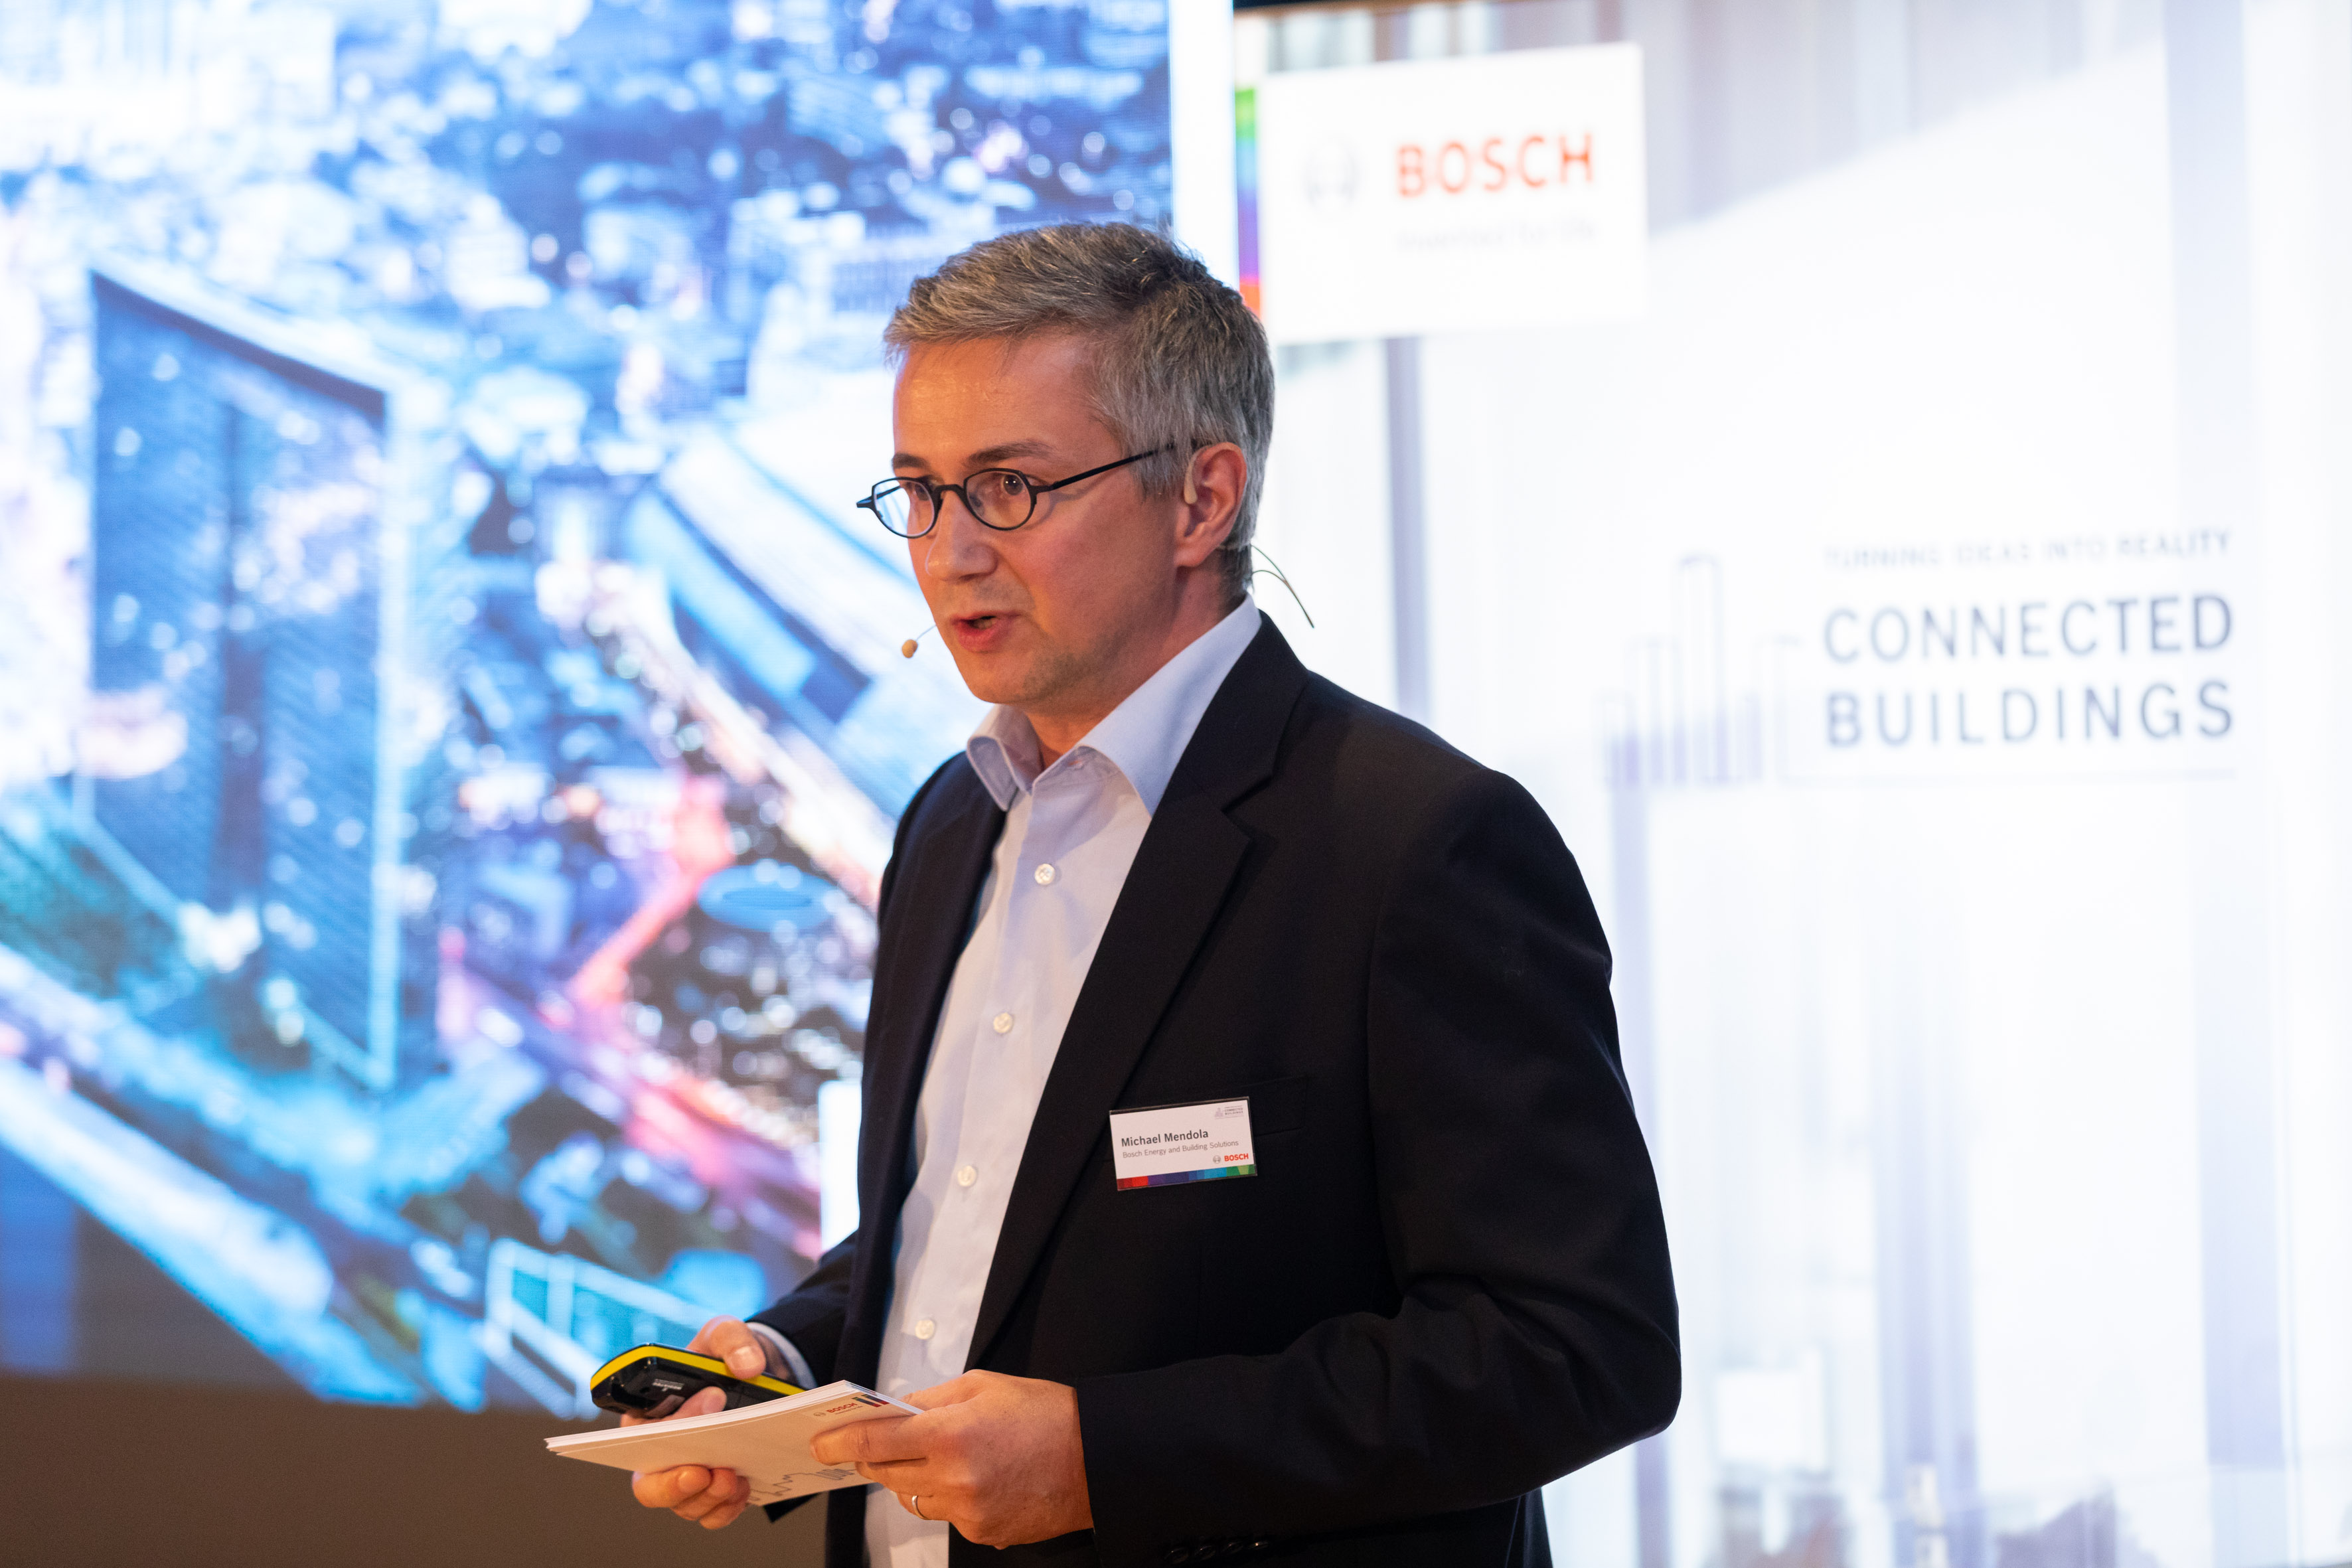 Bosch Energy and Building Solutions Italy